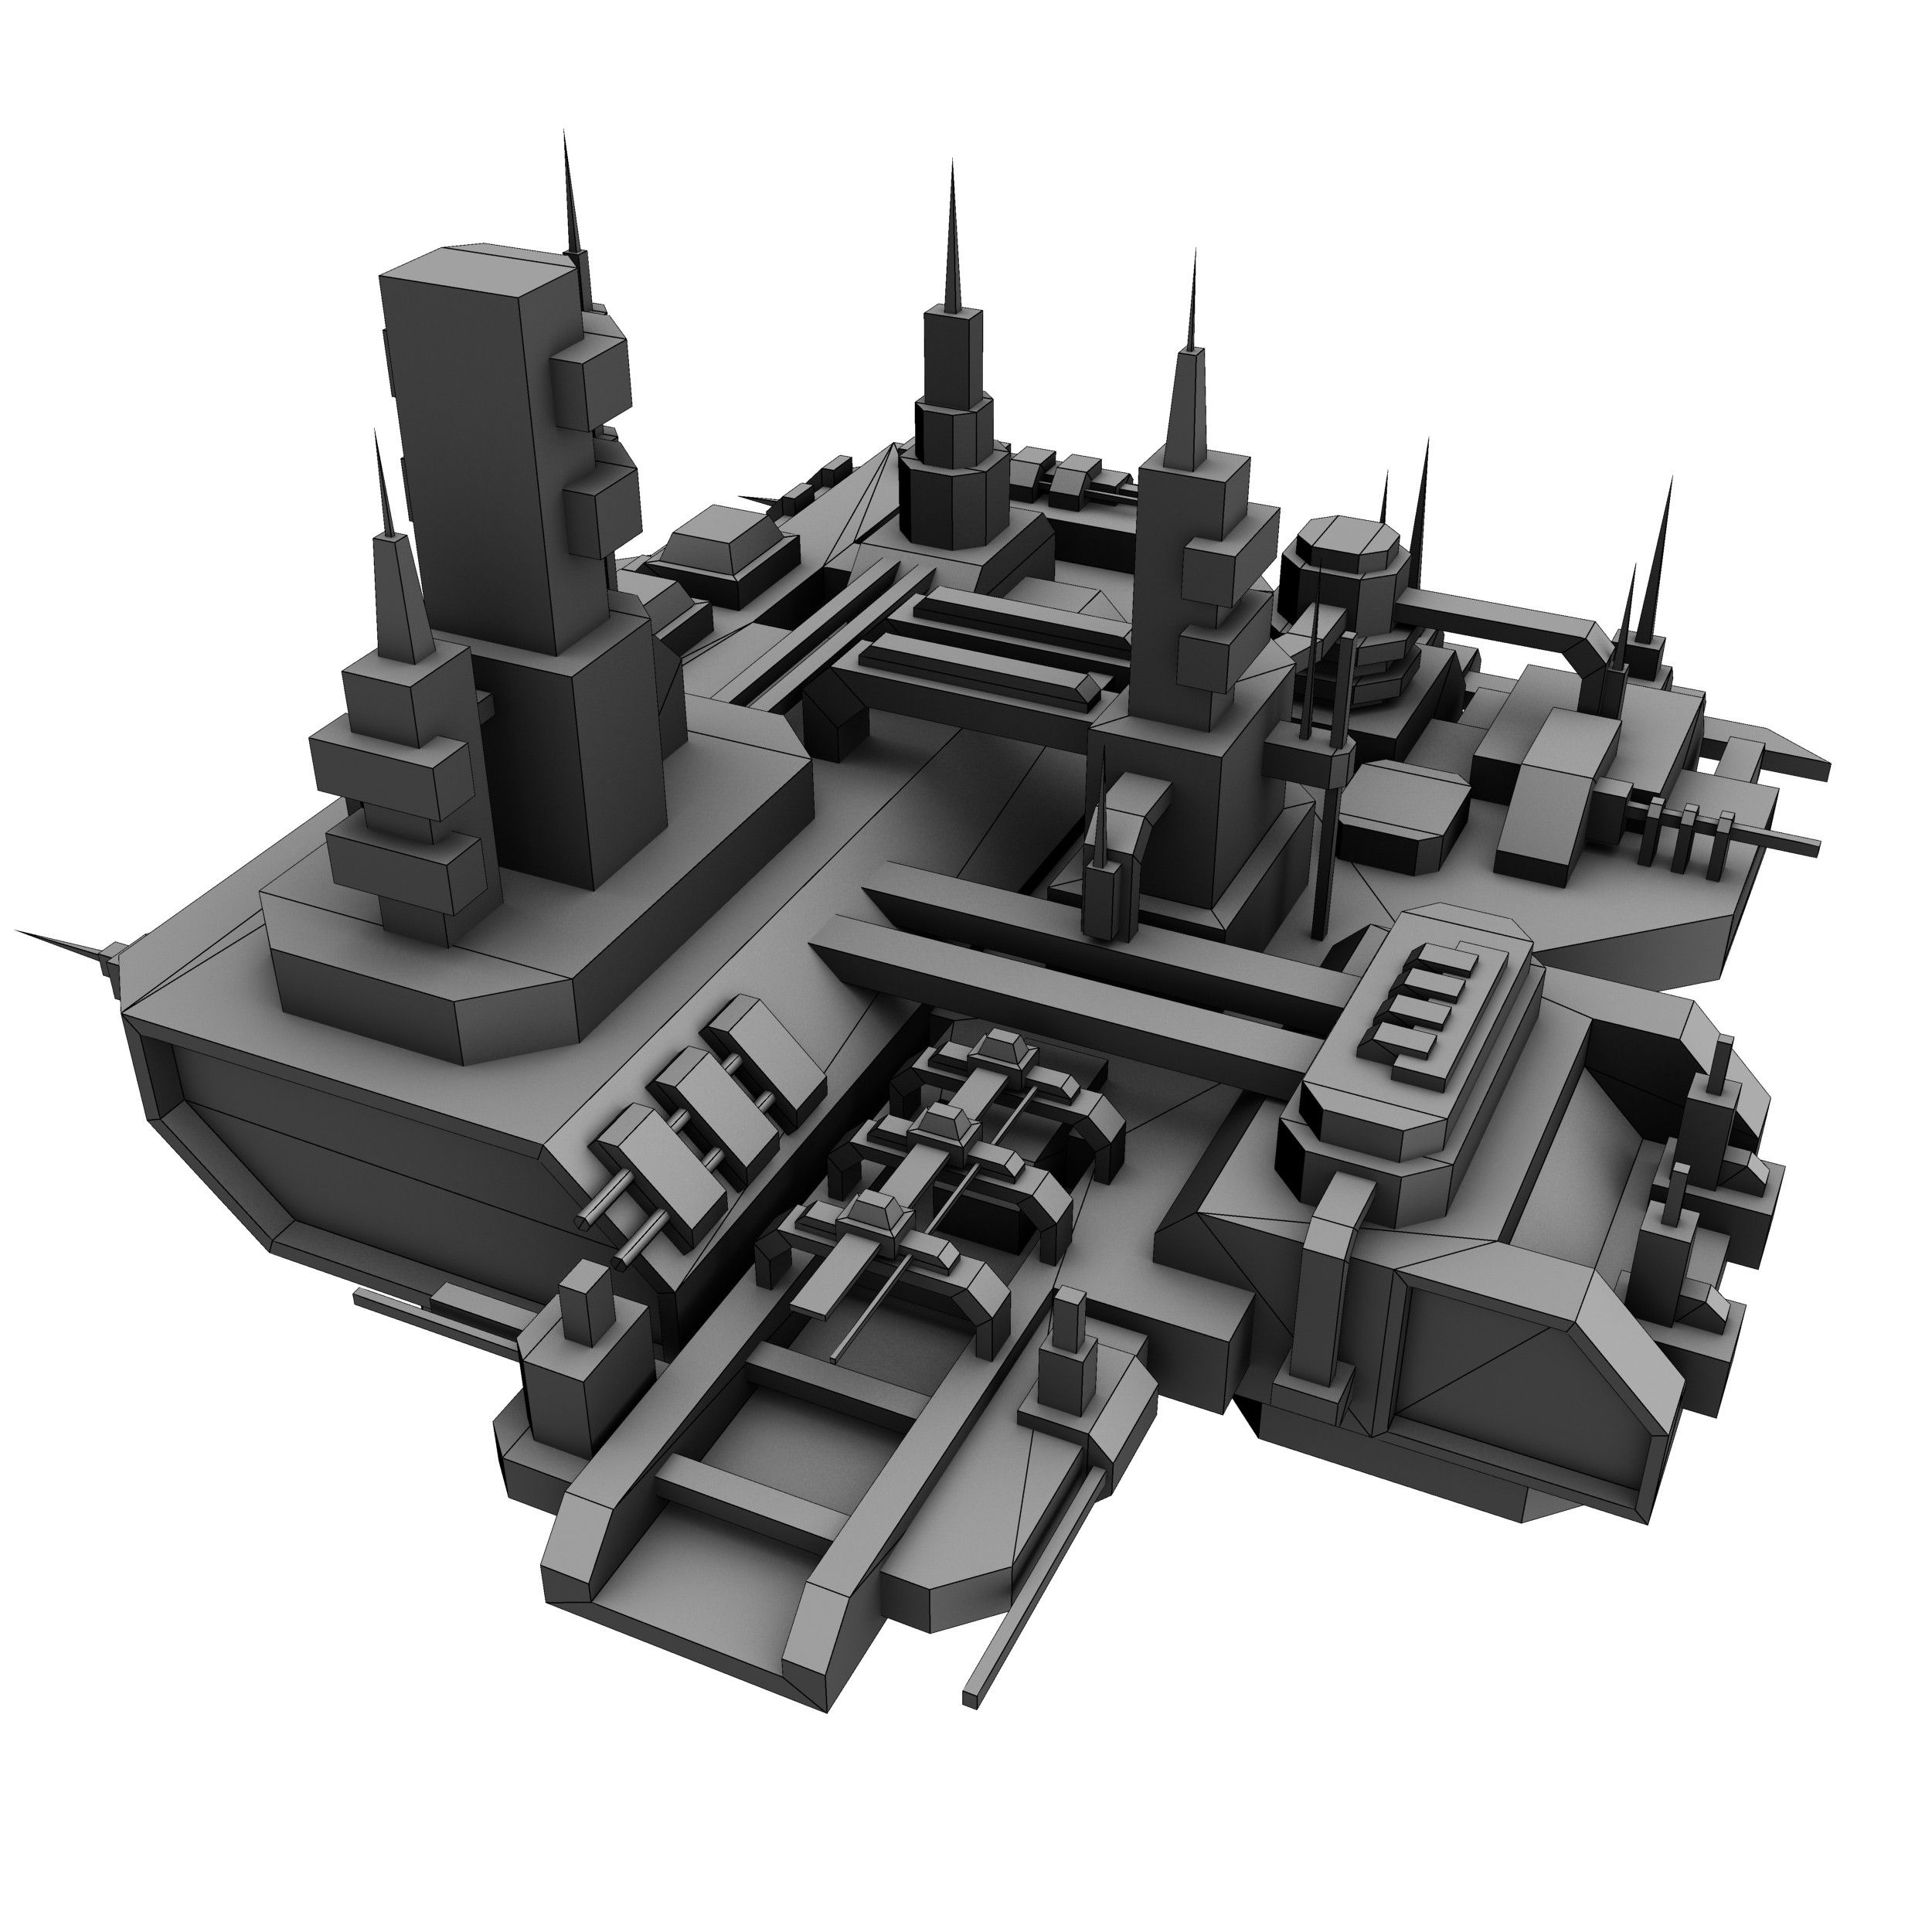 space station 3d | Building concept, Starship design ...